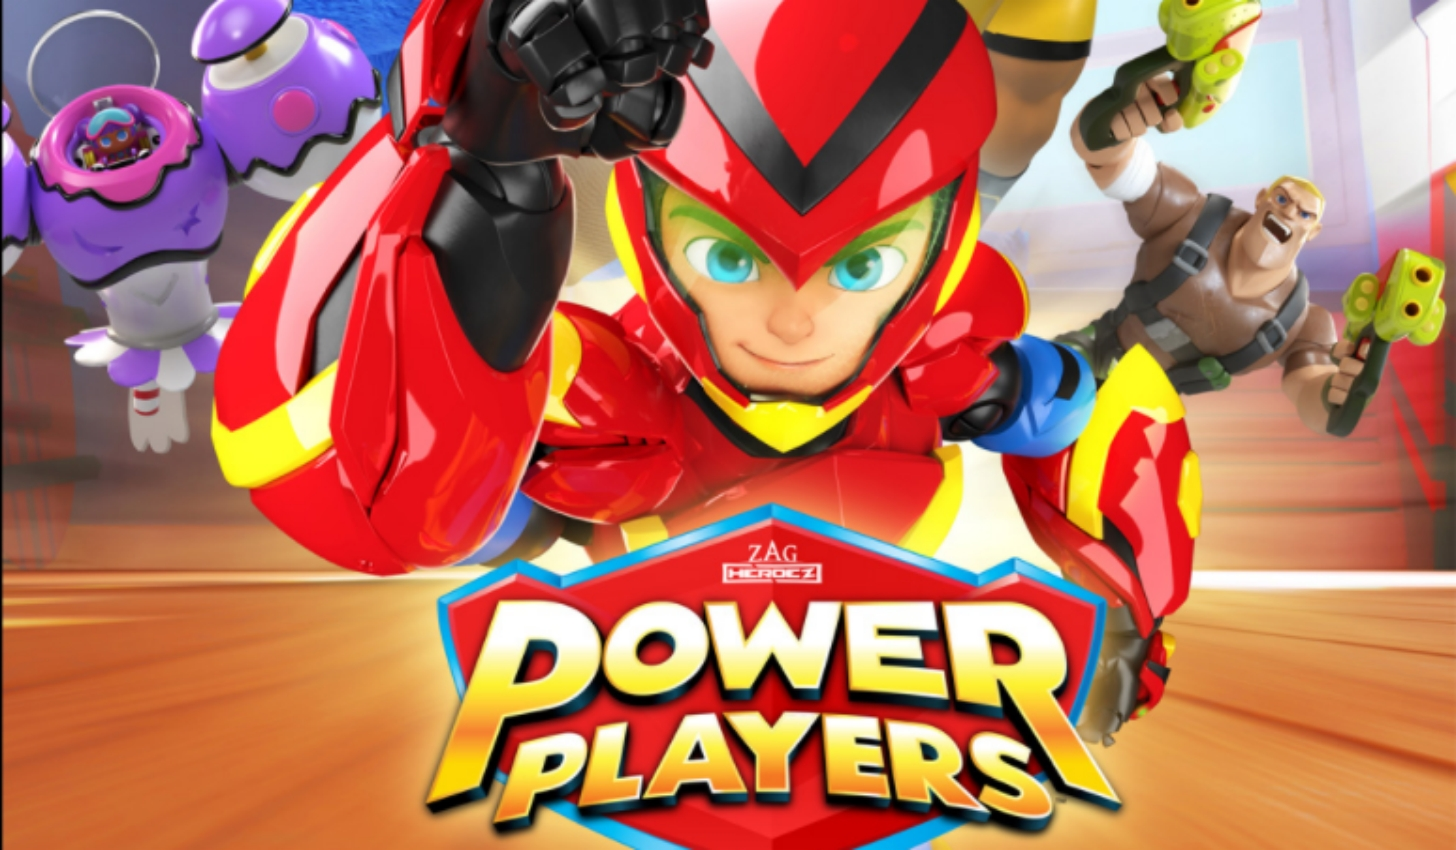 Power Players - La serie animada en Cartoonito